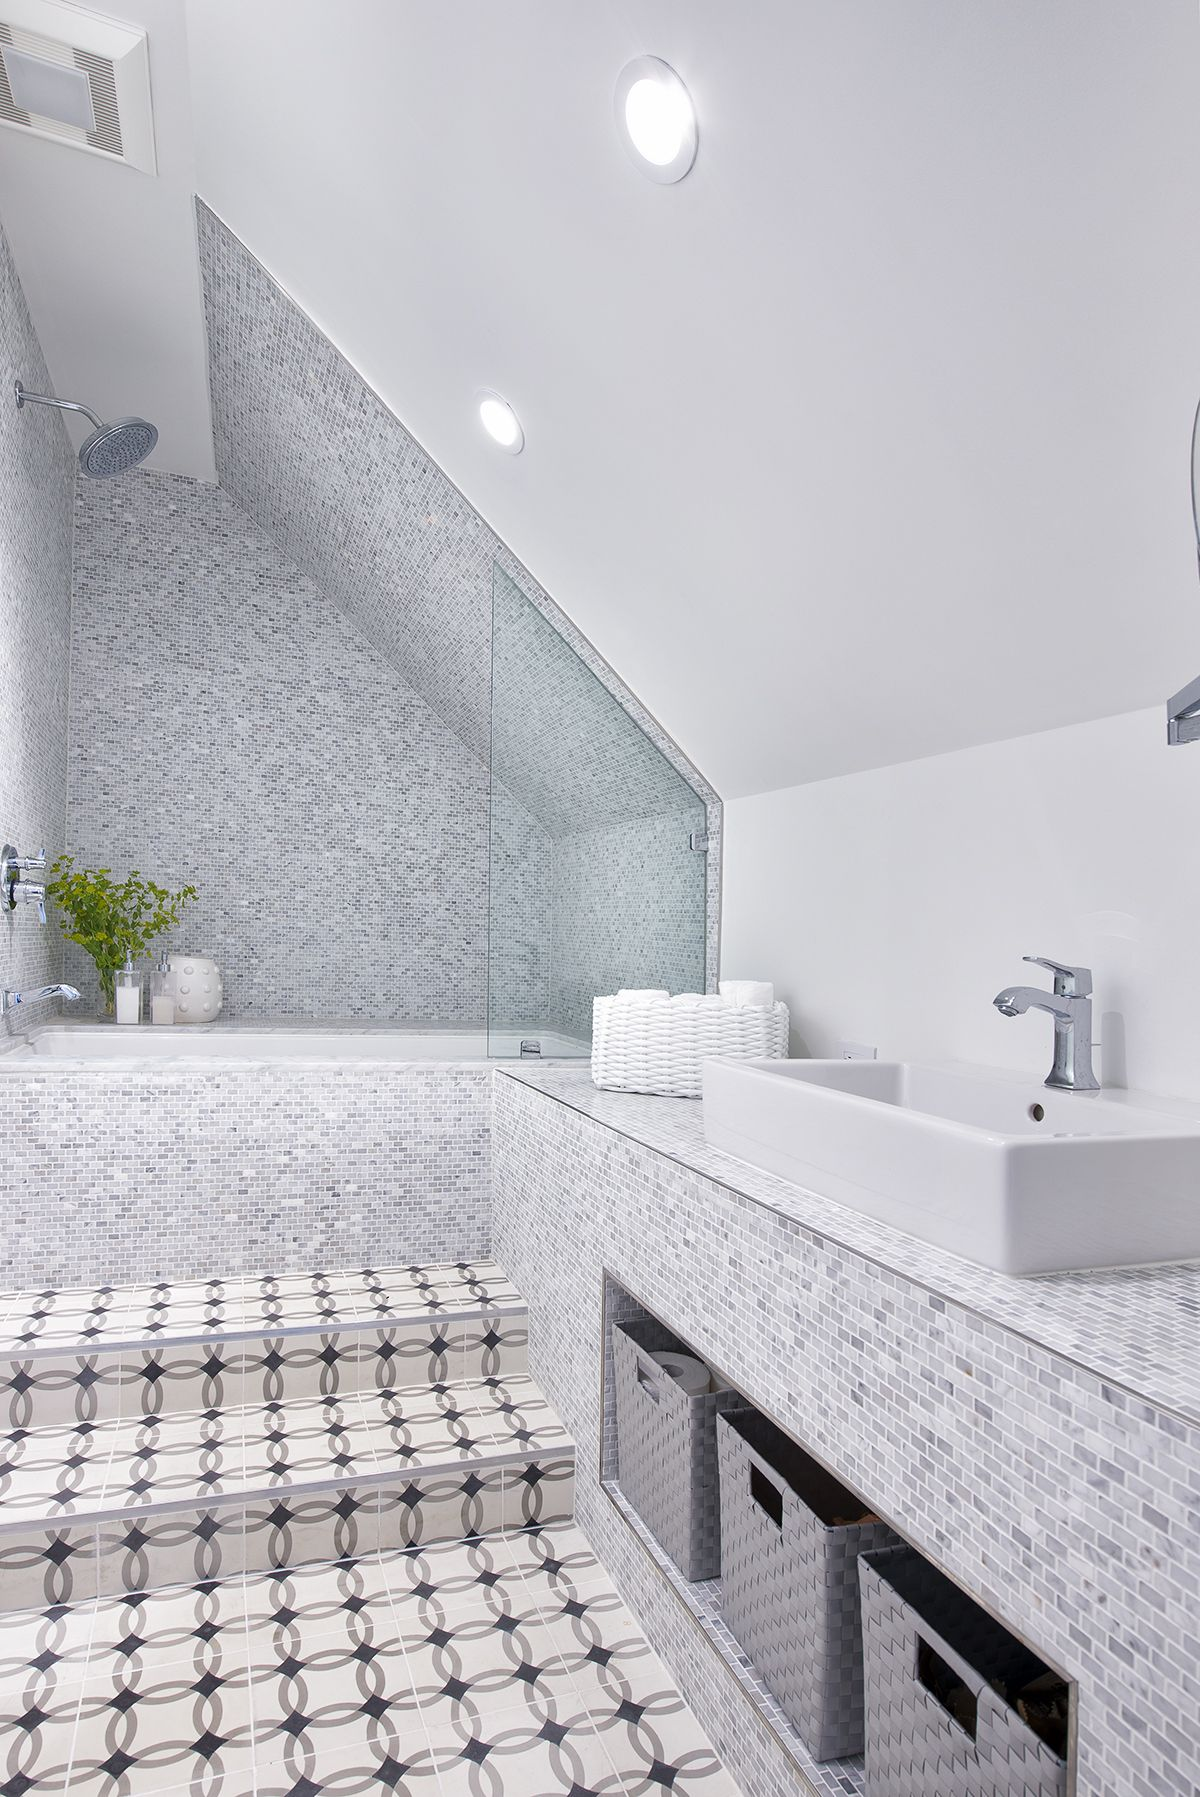 Materials Floor Mosaic Tile Wall Smooth Walls And Marble Tiles